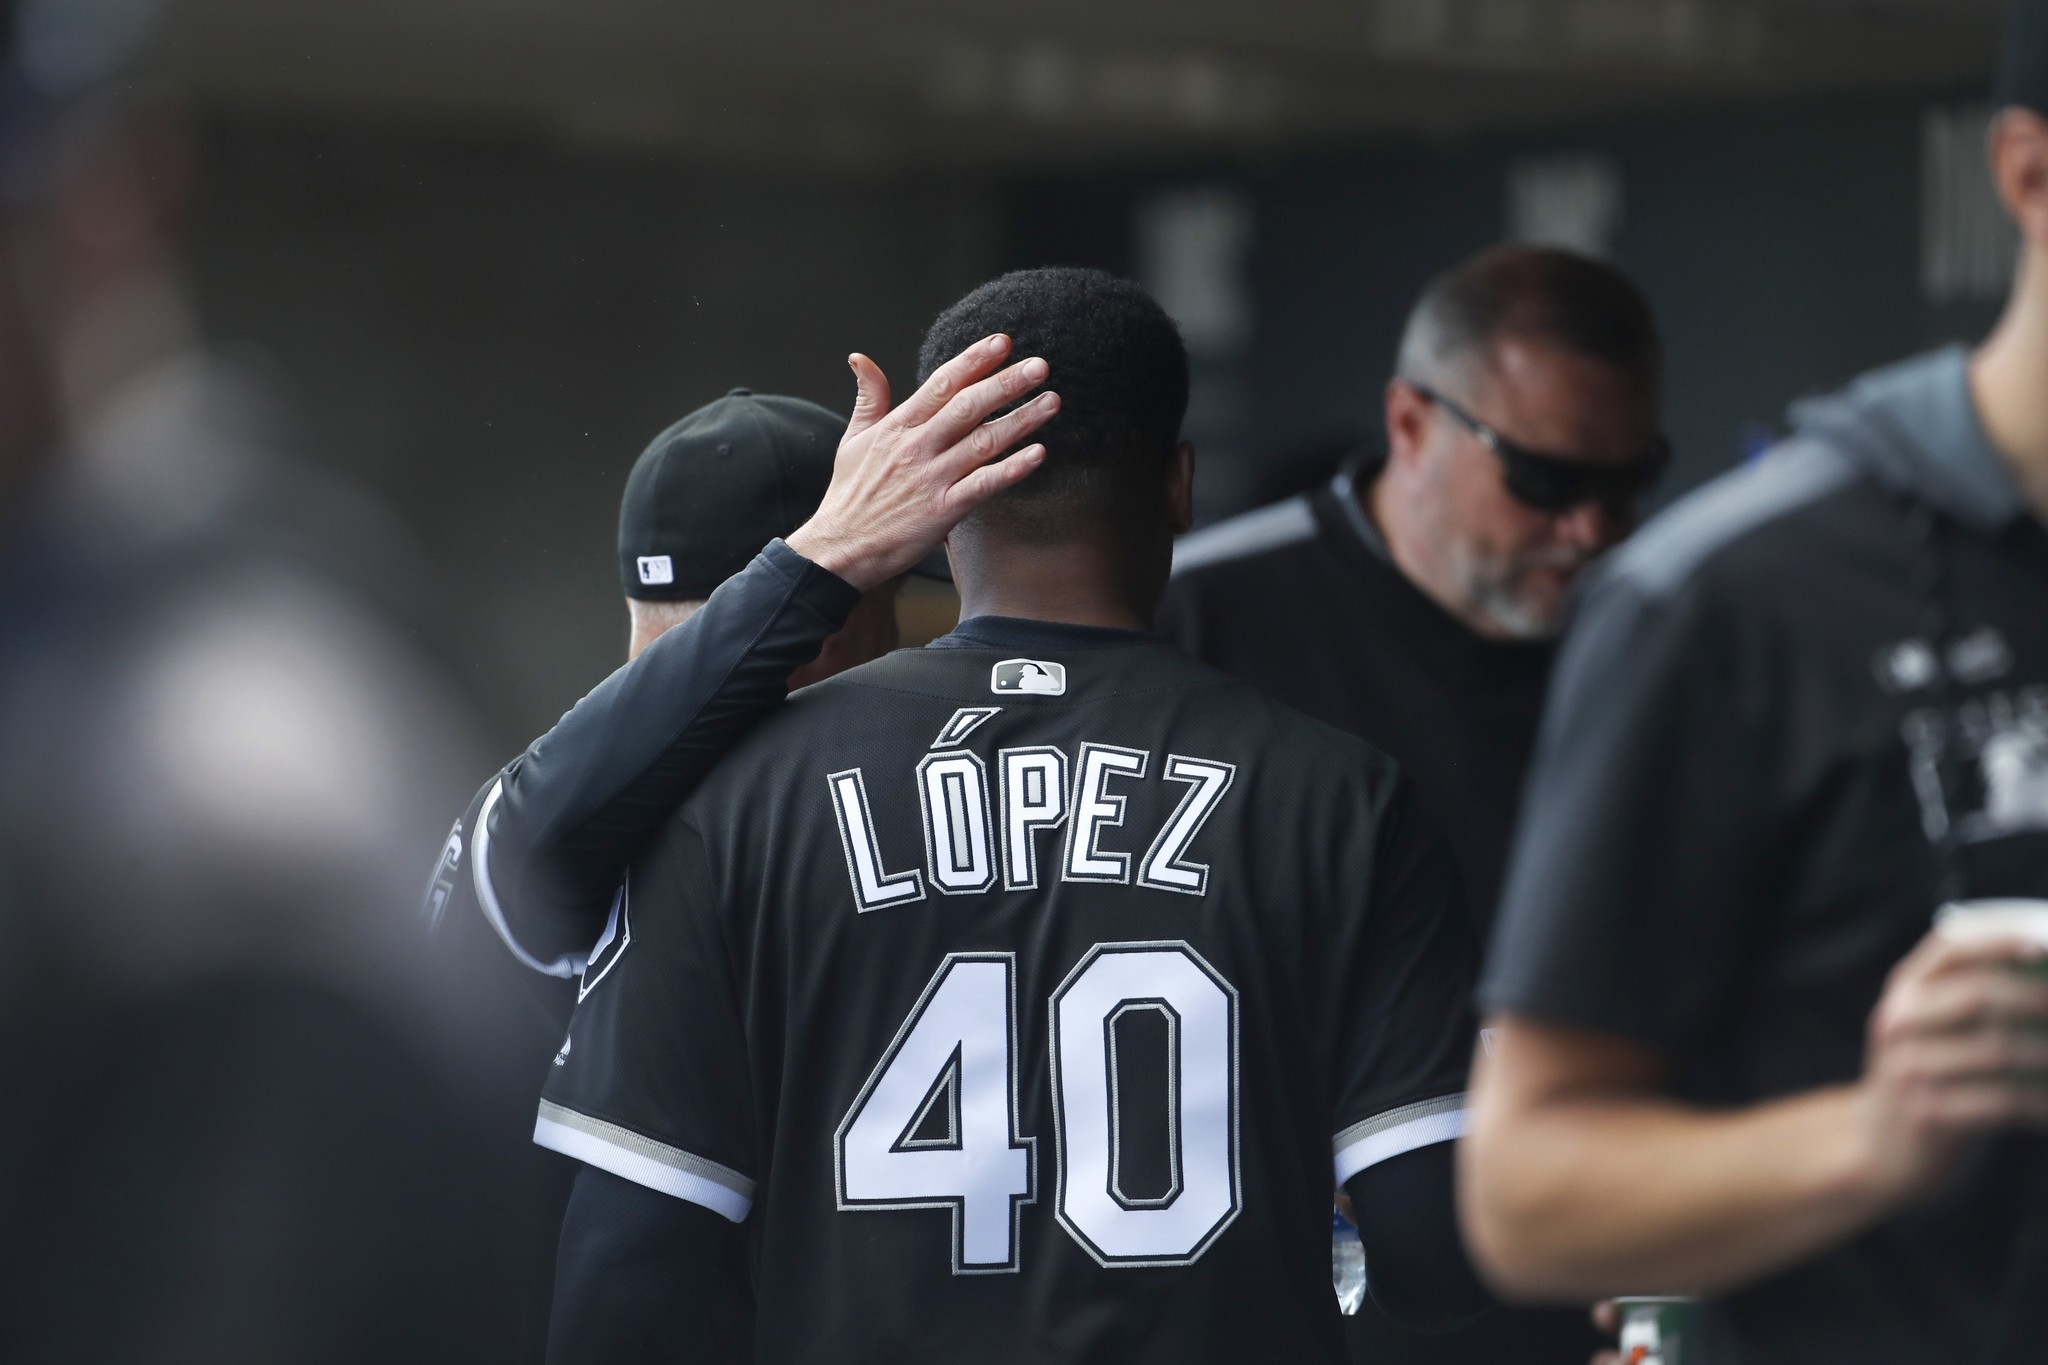 White Sox make a late comeback, but fall 4-3 to the Tigers